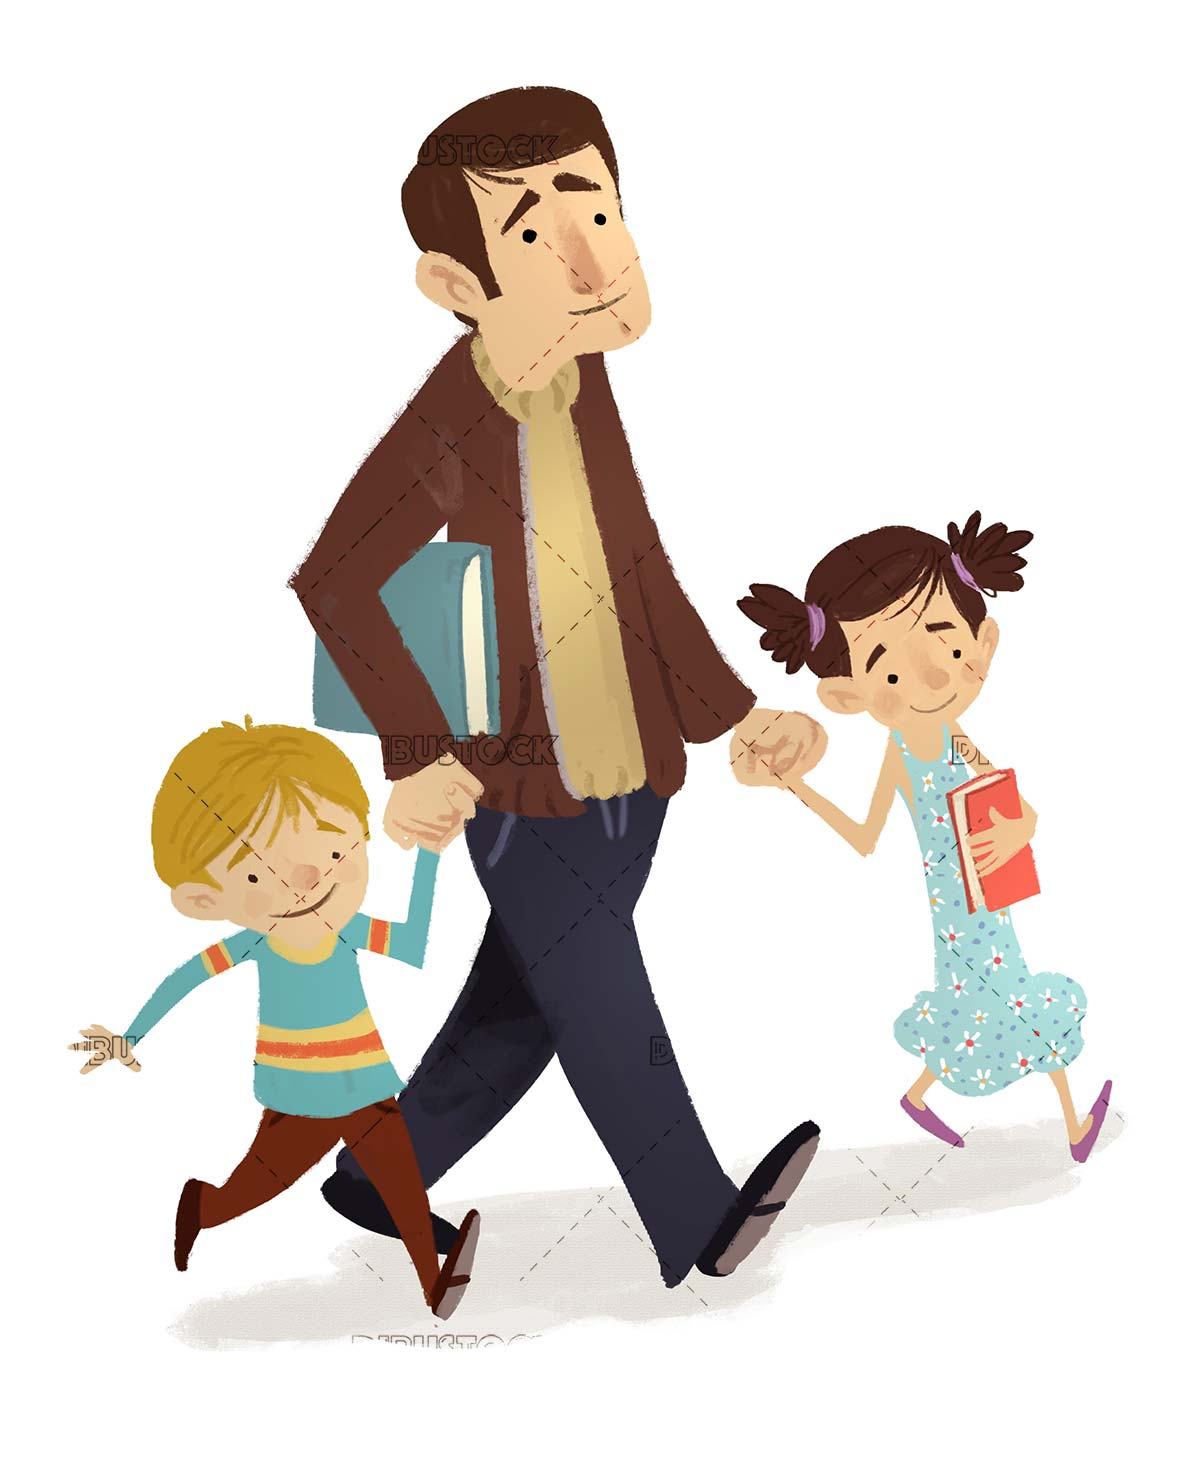 father with his two son walking with books in his hand